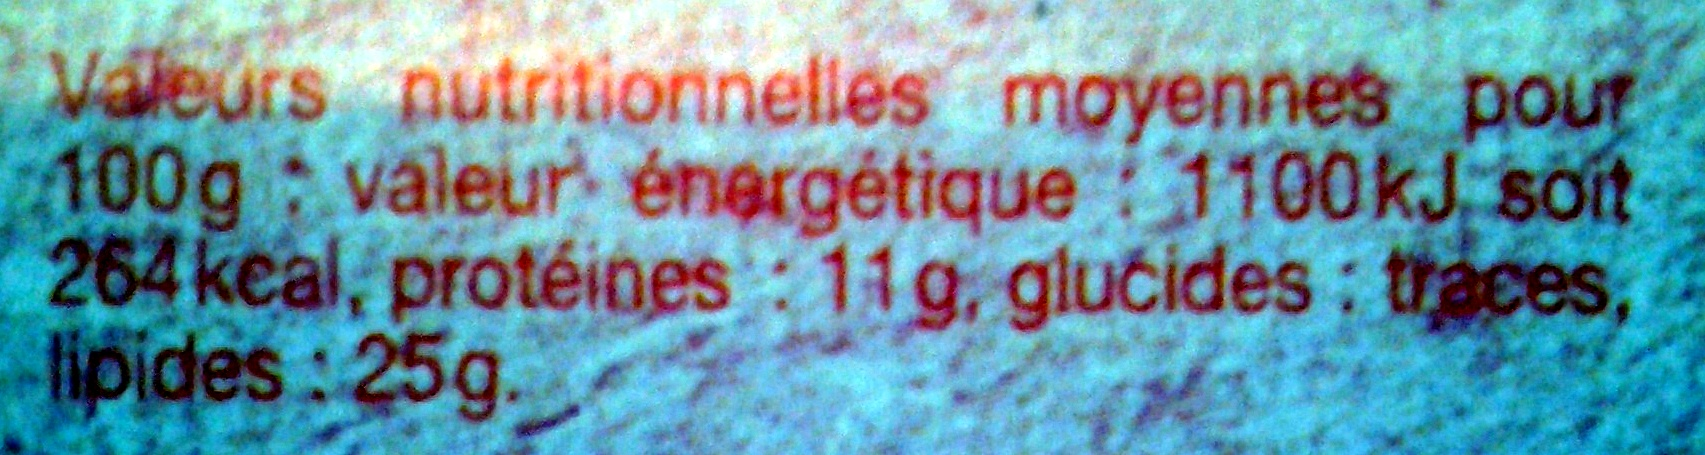 Fromage St Félicien - Informations nutritionnelles - fr